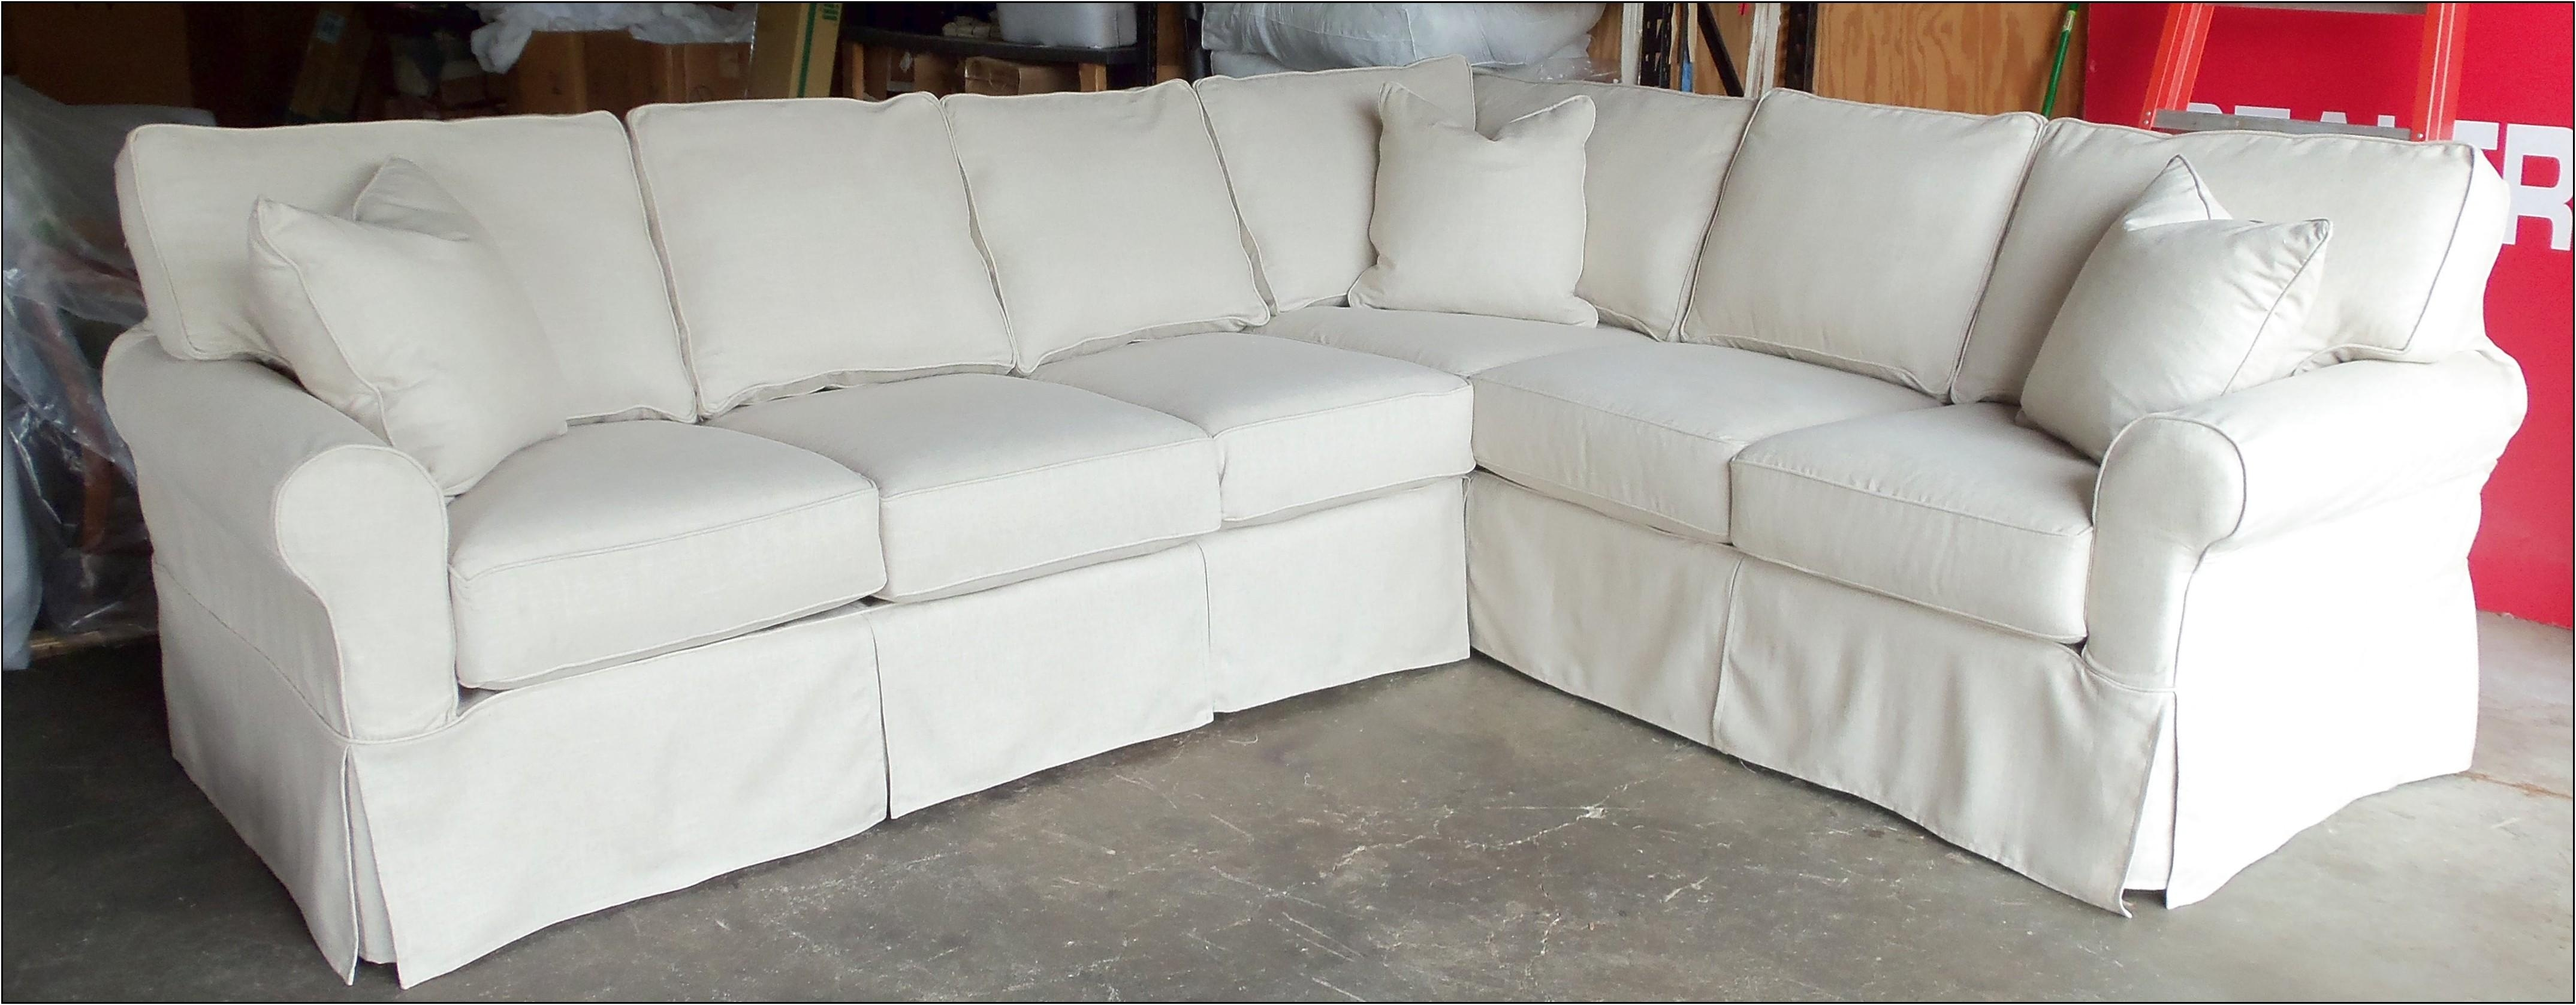 Furniture: Couch Covers At Walmart To Make Your Furniture Stylish Within Slipcovers For Sectional Sofas With Recliners (Image 5 of 20)